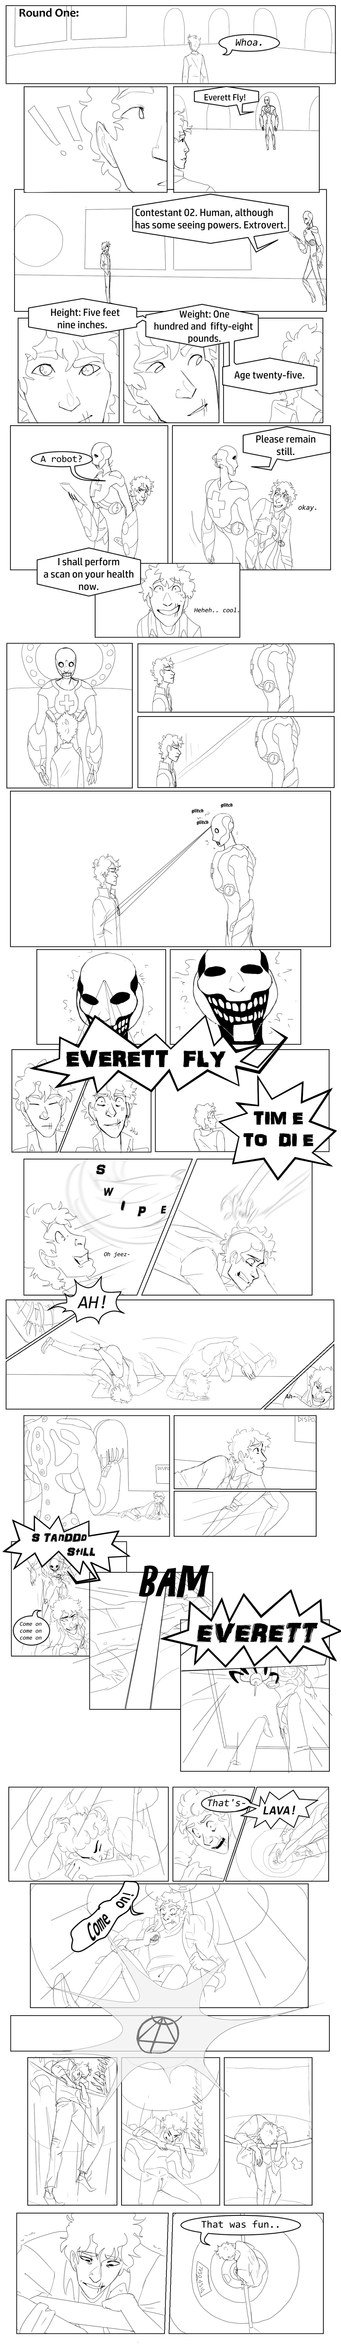 Tower: Round One Page One by chamimation